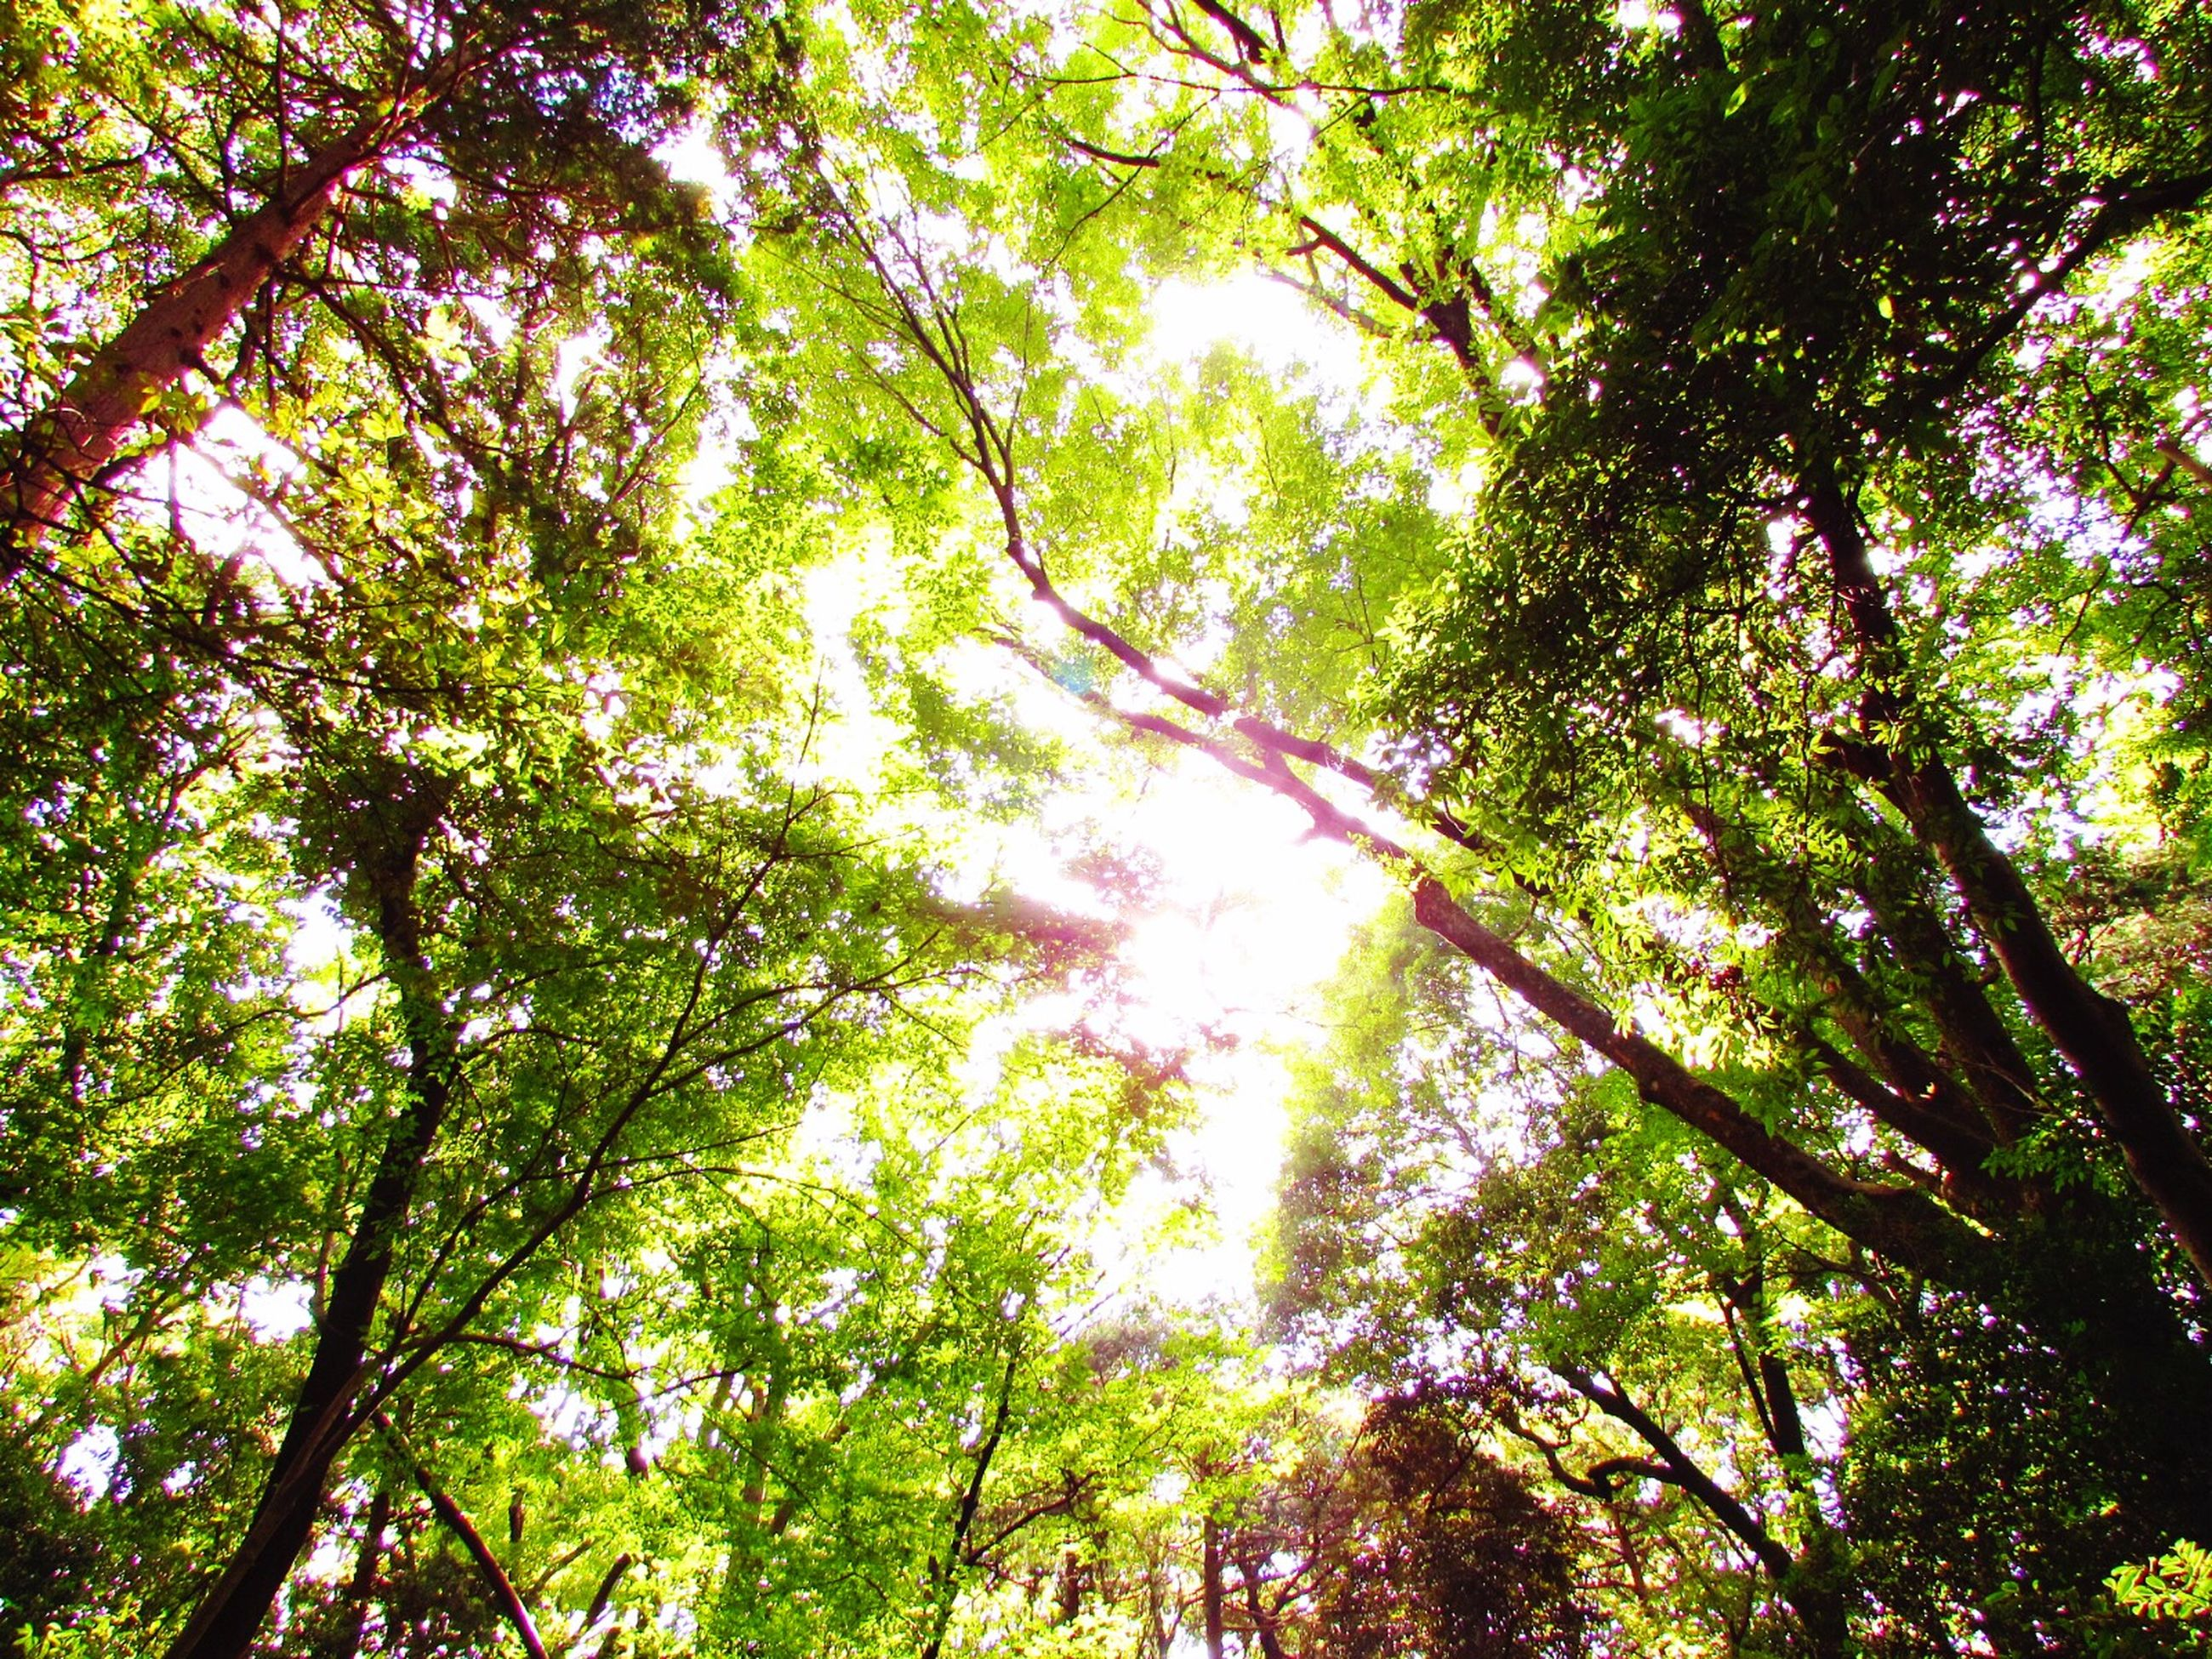 tree, low angle view, growth, branch, tranquility, forest, nature, beauty in nature, green color, tree trunk, tranquil scene, scenics, lush foliage, day, sky, backgrounds, outdoors, no people, woodland, sunlight